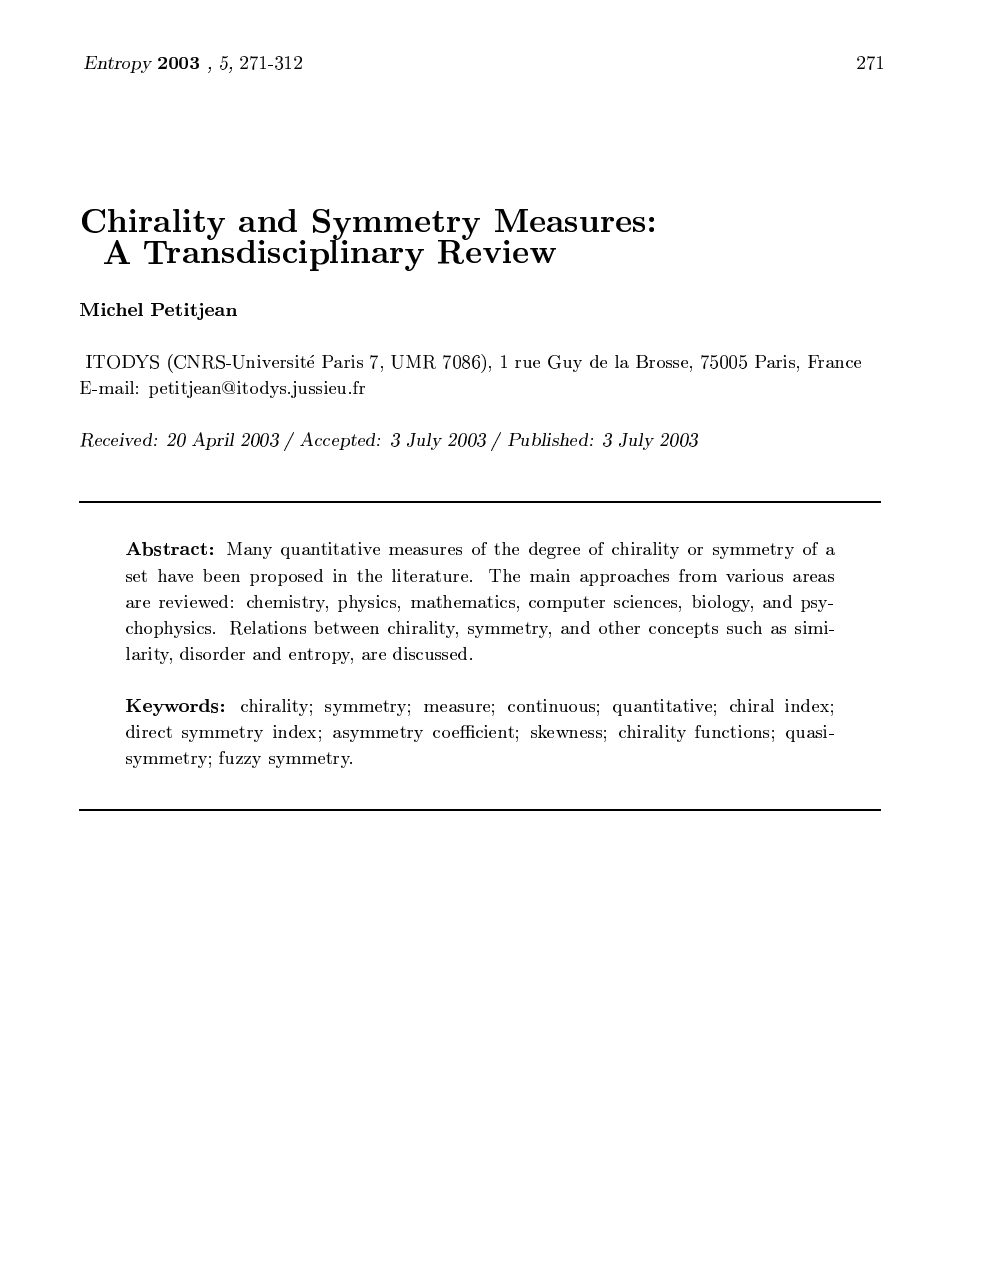 Chirality and Symmetry Measures: A Transdisciplinary Review